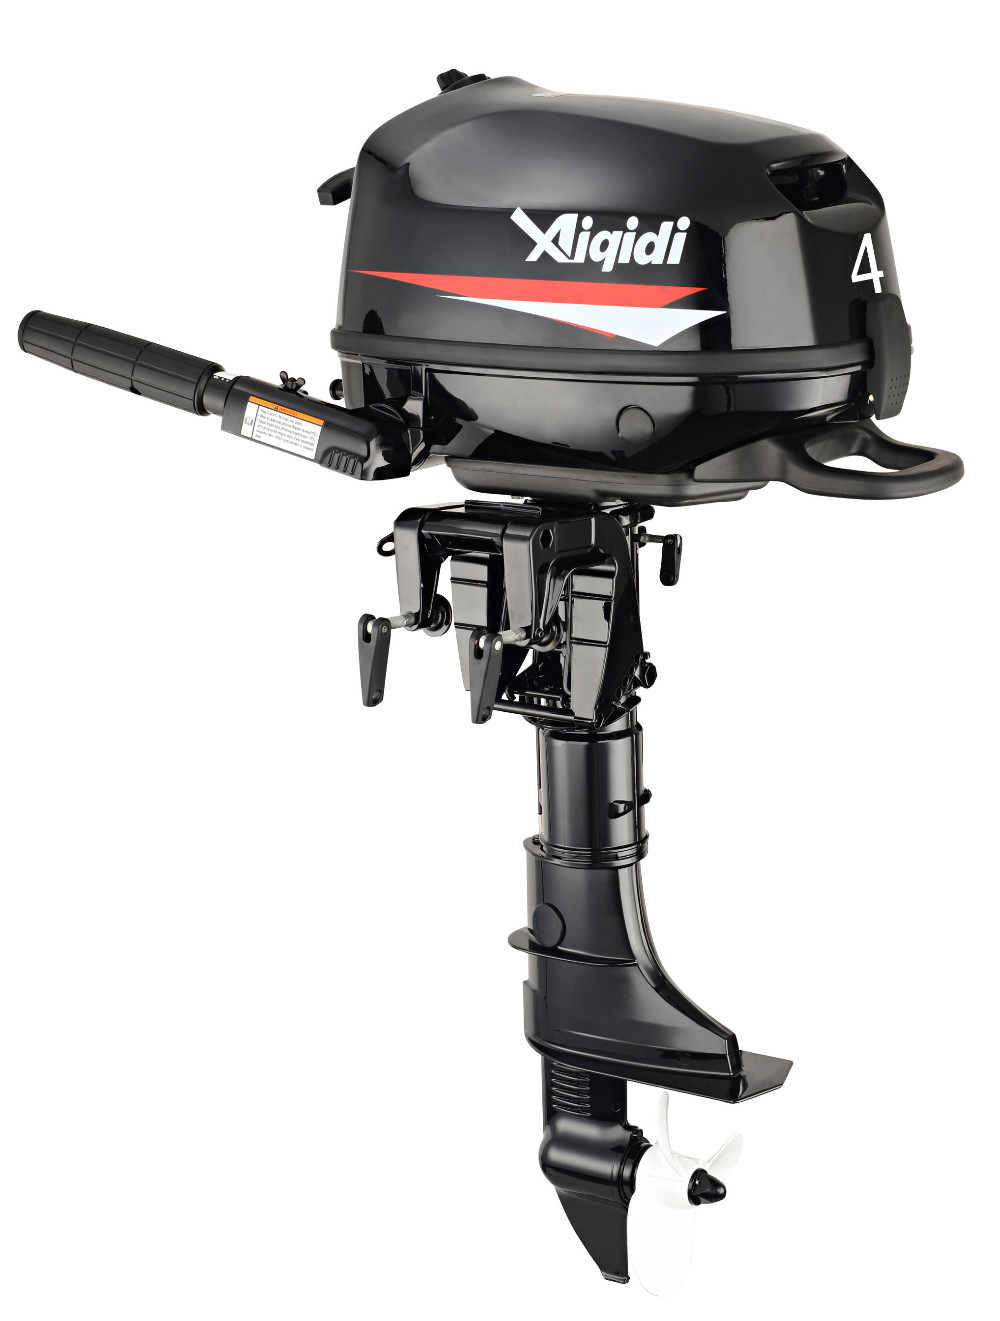 4hp outboard engine outboard motor boat engine buy for Boat motors for sale in sc